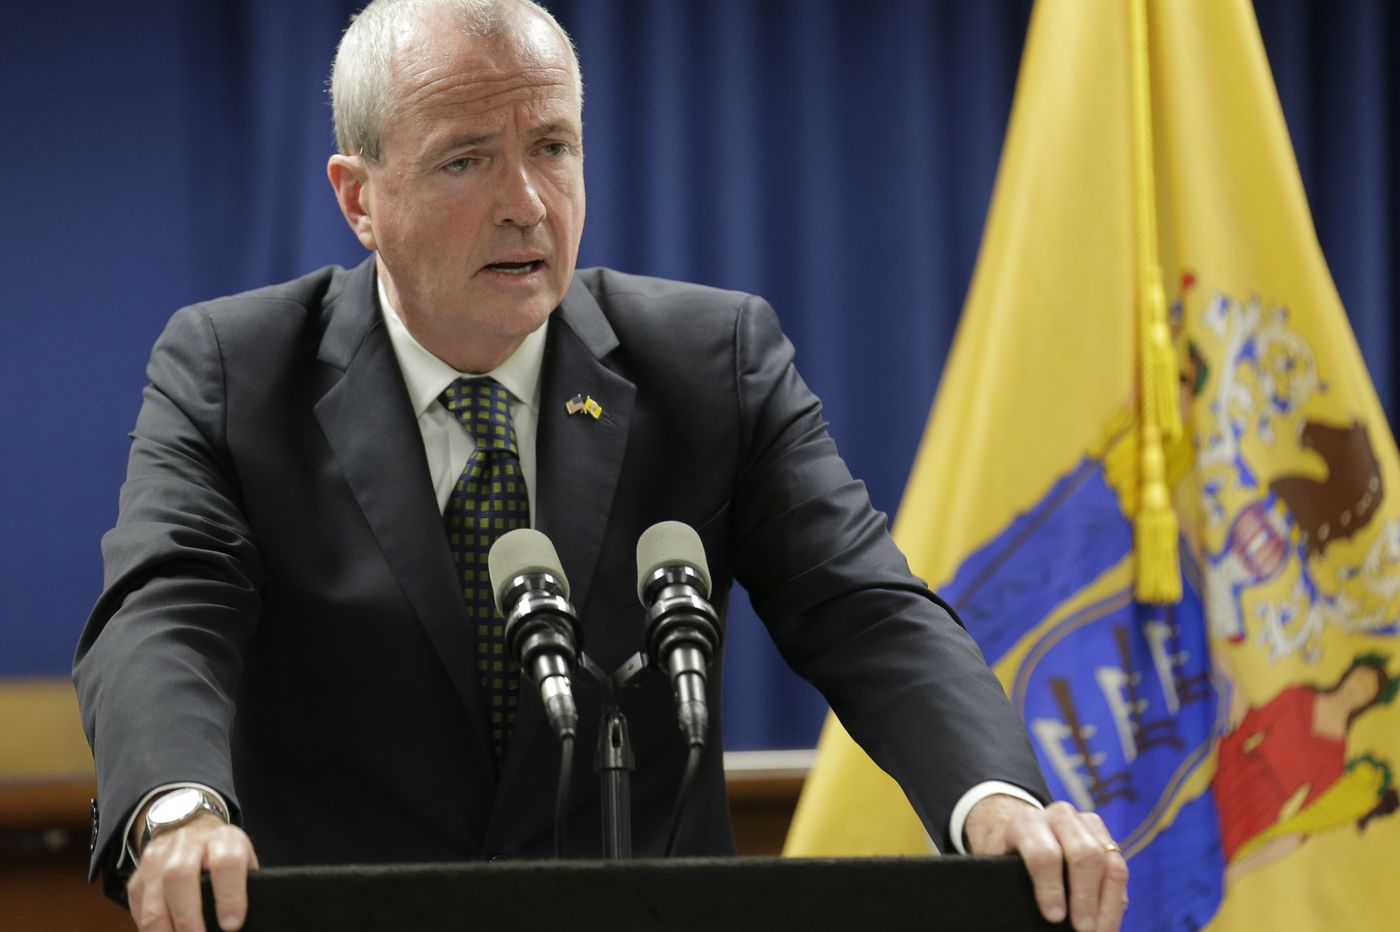 N.J. Gov. Murphy's credibility takes a hit with official's testimony on alleged sexual assault by former aide